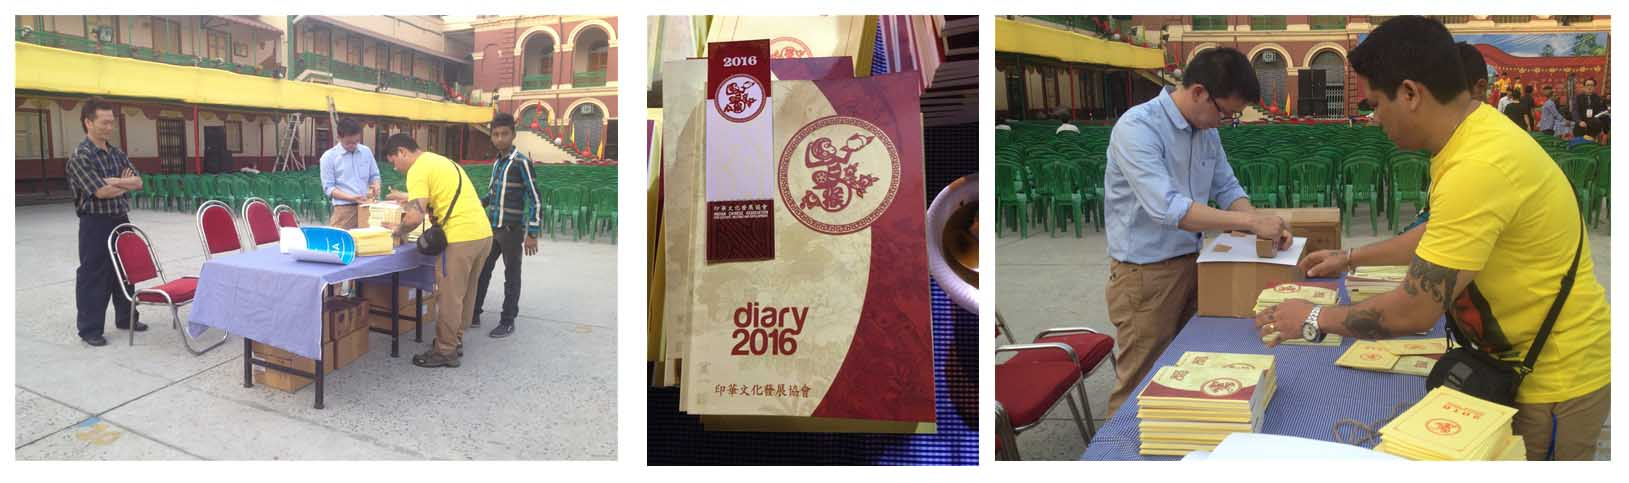 Diary Stall - Lion Dance Display & Cultural Show 2016, Kolkata, India